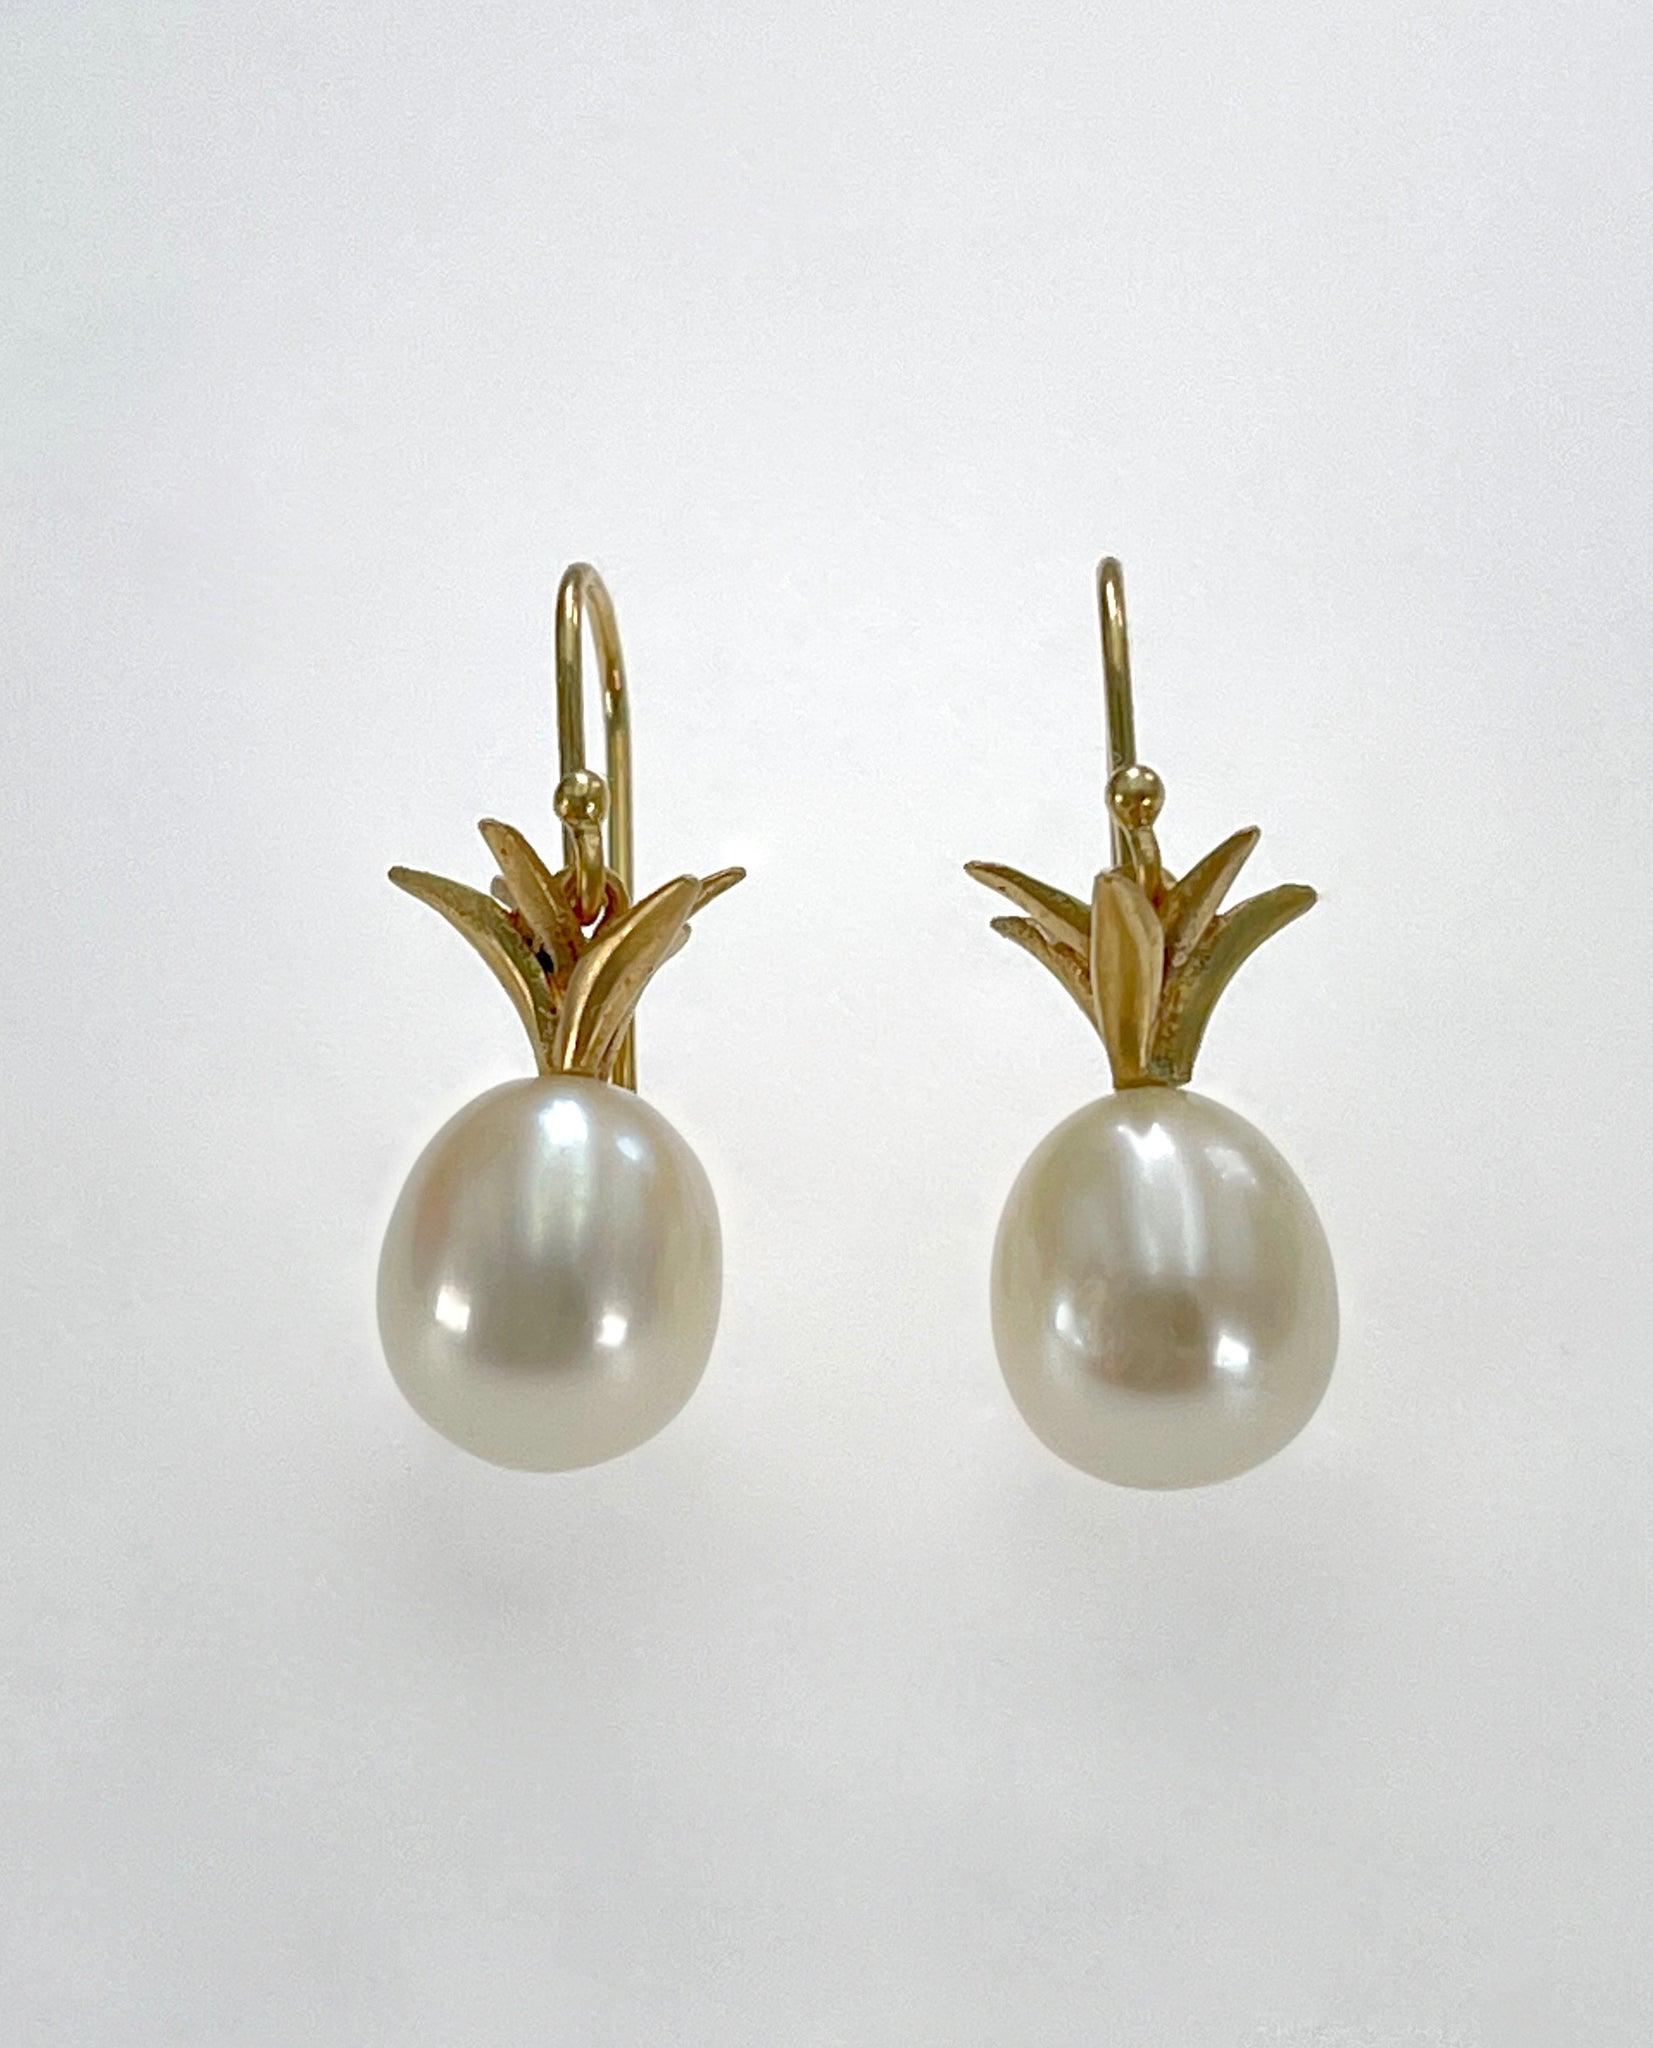 Annette Ferdinandsen Small 10K Gold and White Pearl Pineapple Earrings